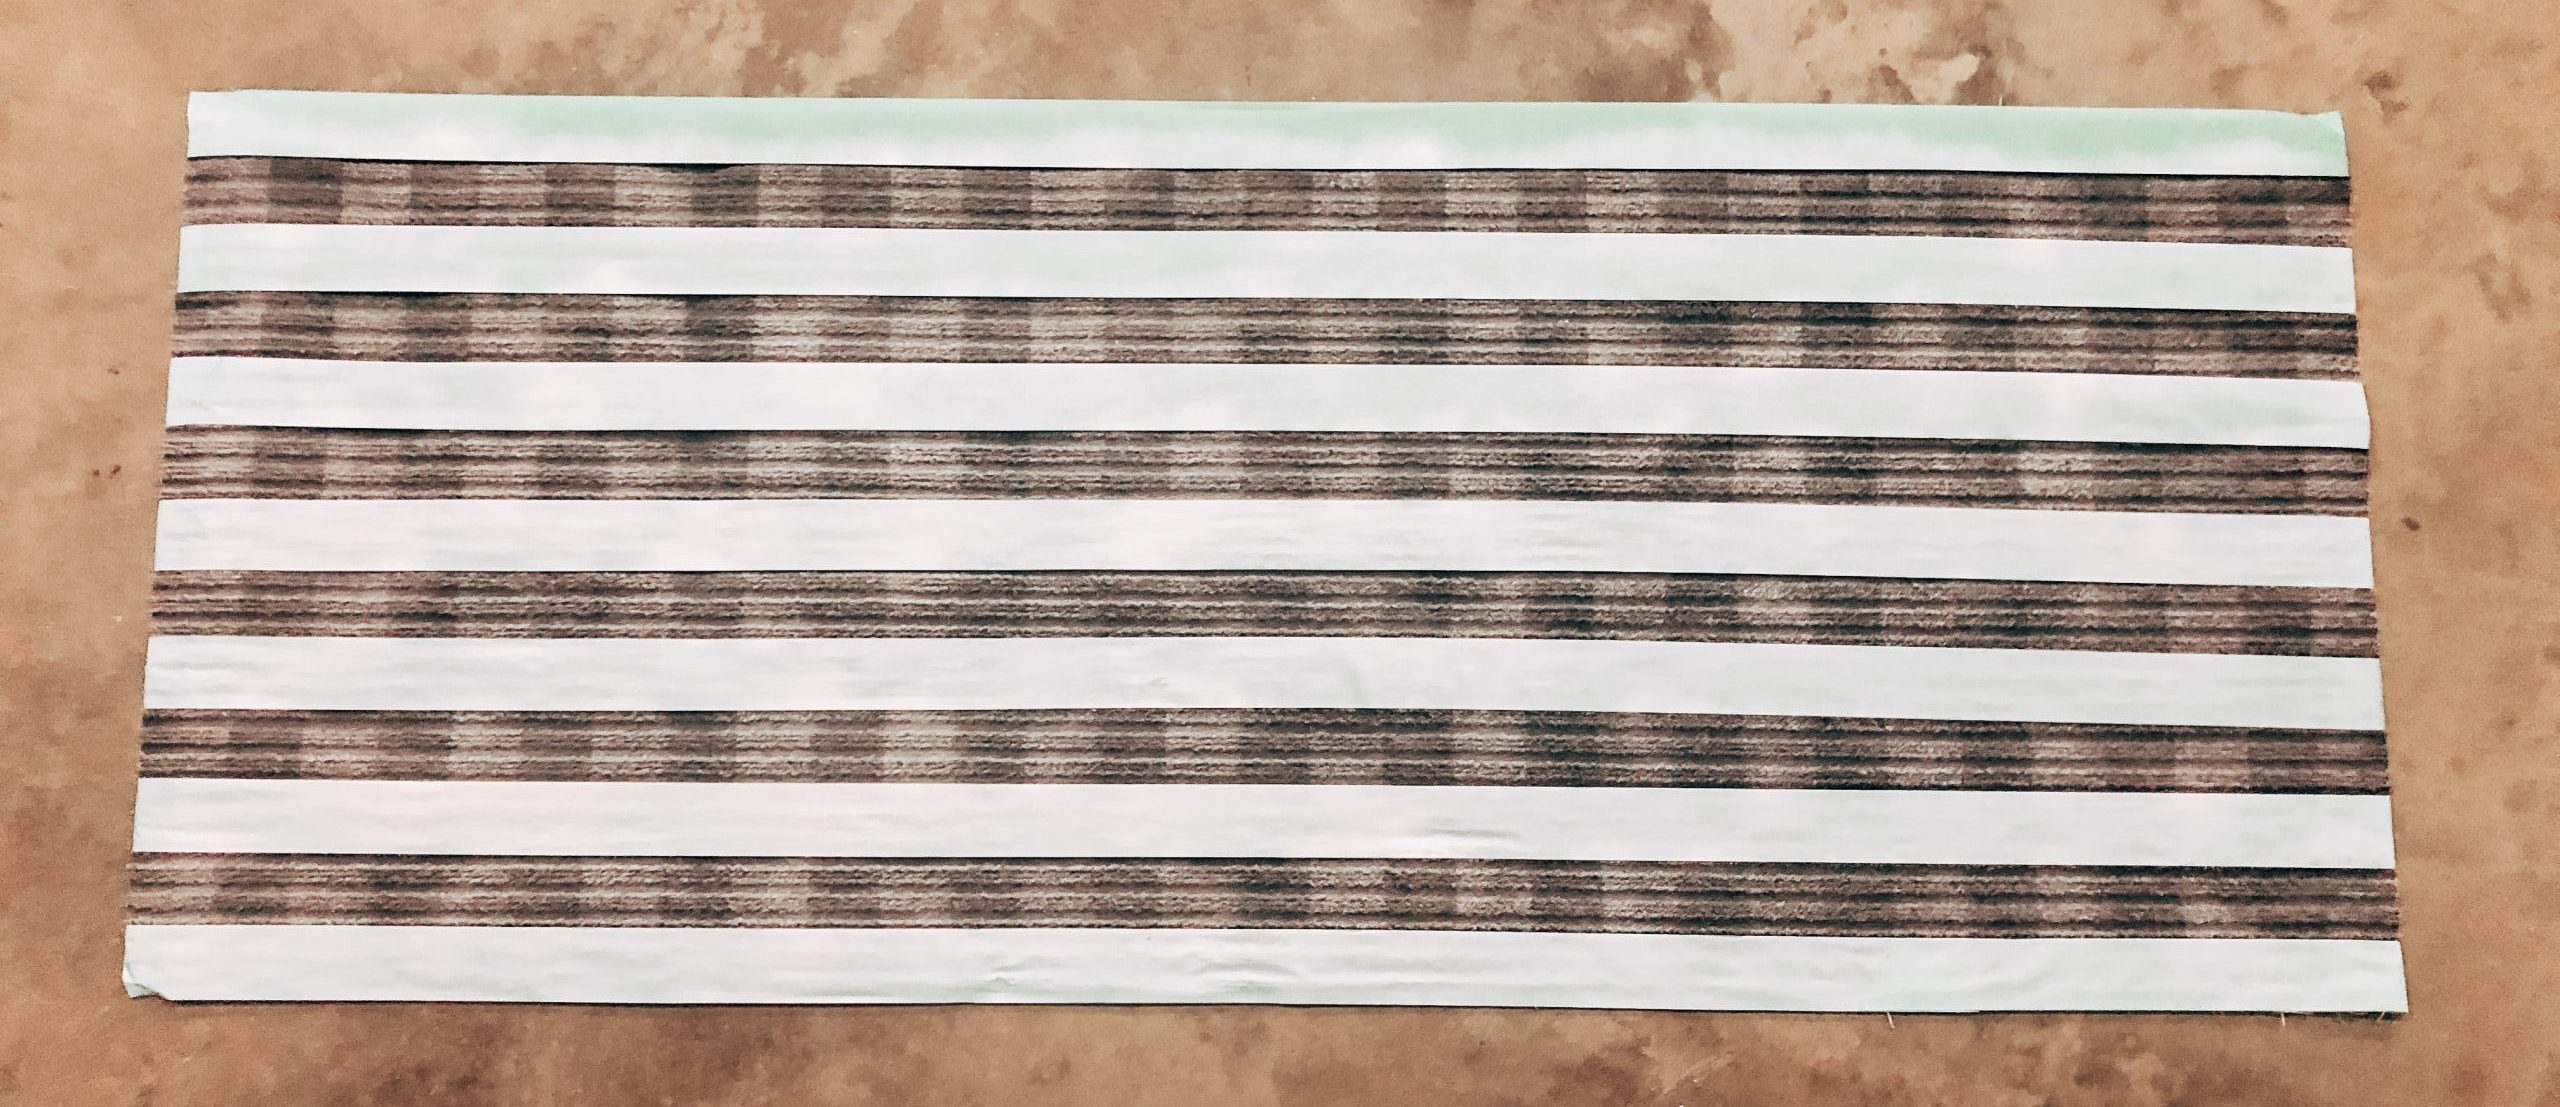 Searching for a buffalo check rug? Click to learn how to make a DIY buffalo check rug in less time than it will take you to source one!